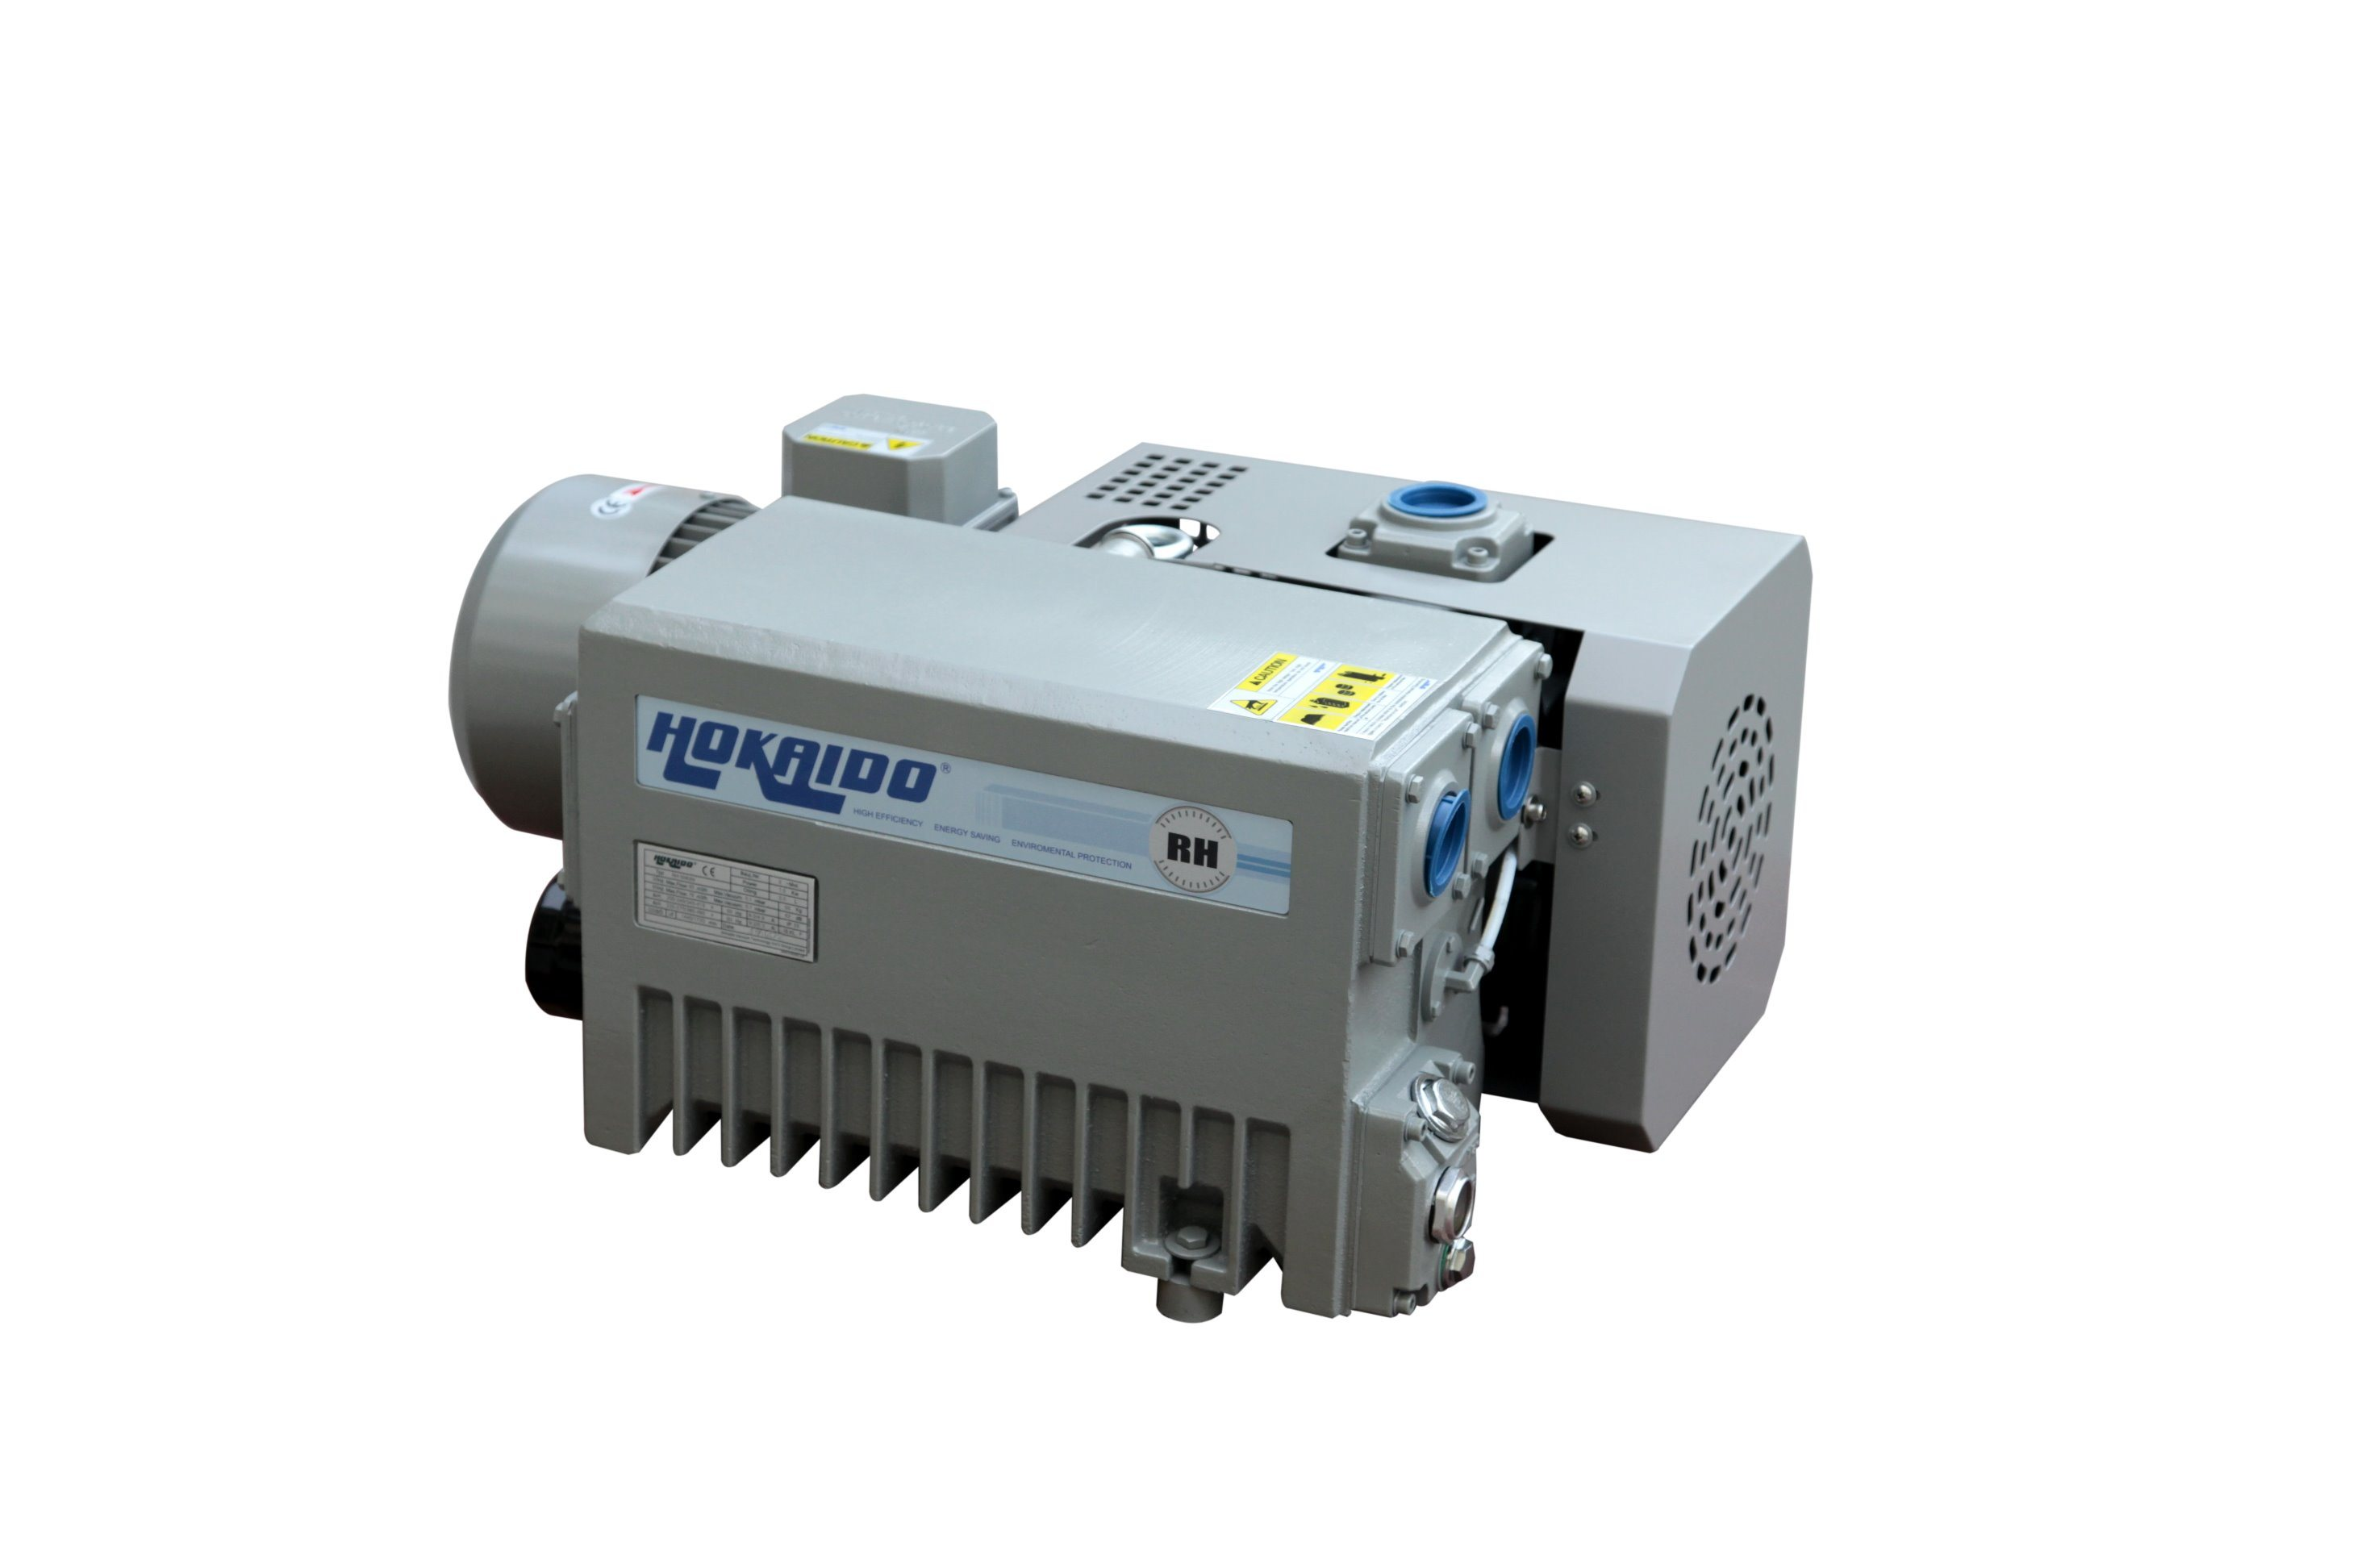 Rh Series Rotary Vane Energy Saving Hospital Vacuum Pump (RH0063)